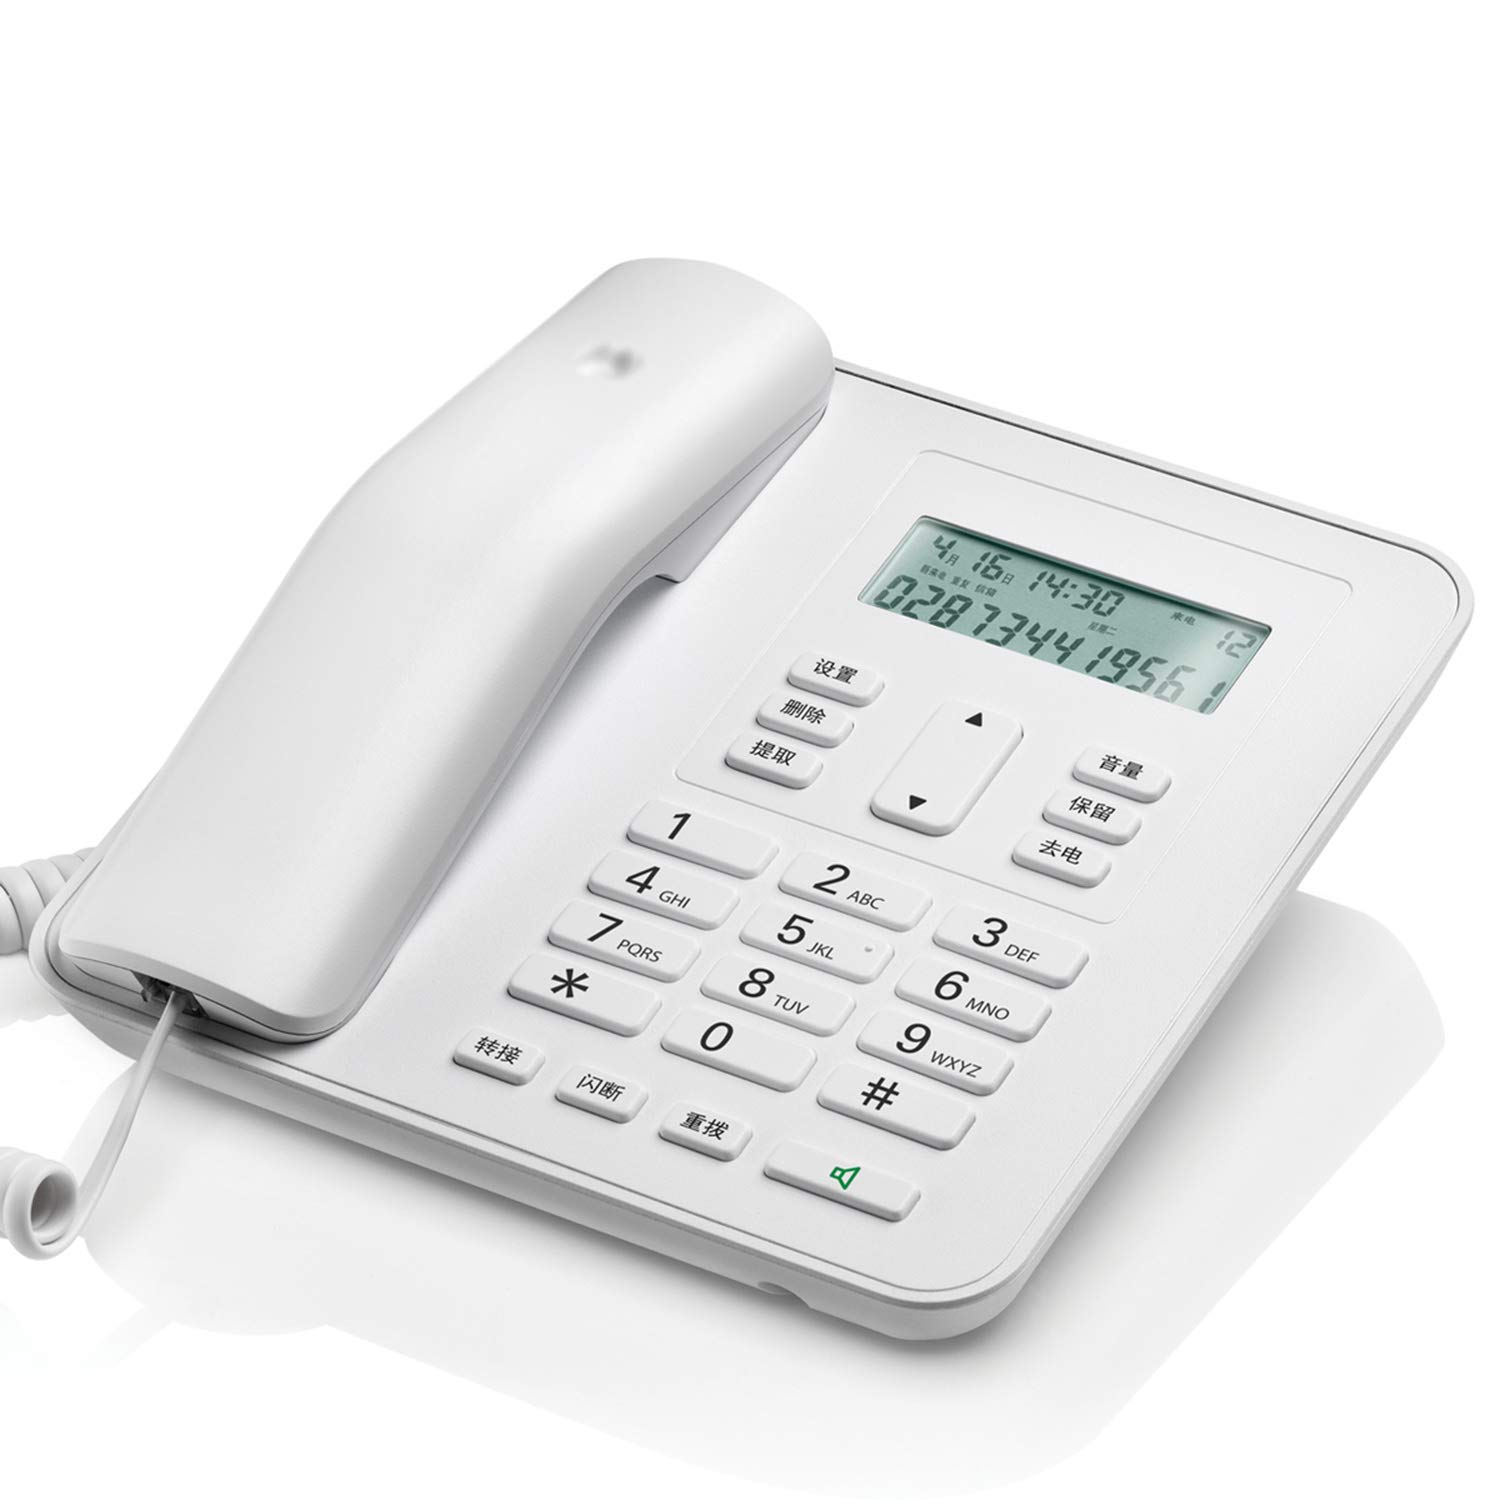 Battery Free Fixed Telephone Landline Corded Telephone Seat Home Office Backlit Fixed Line,White by Telephones